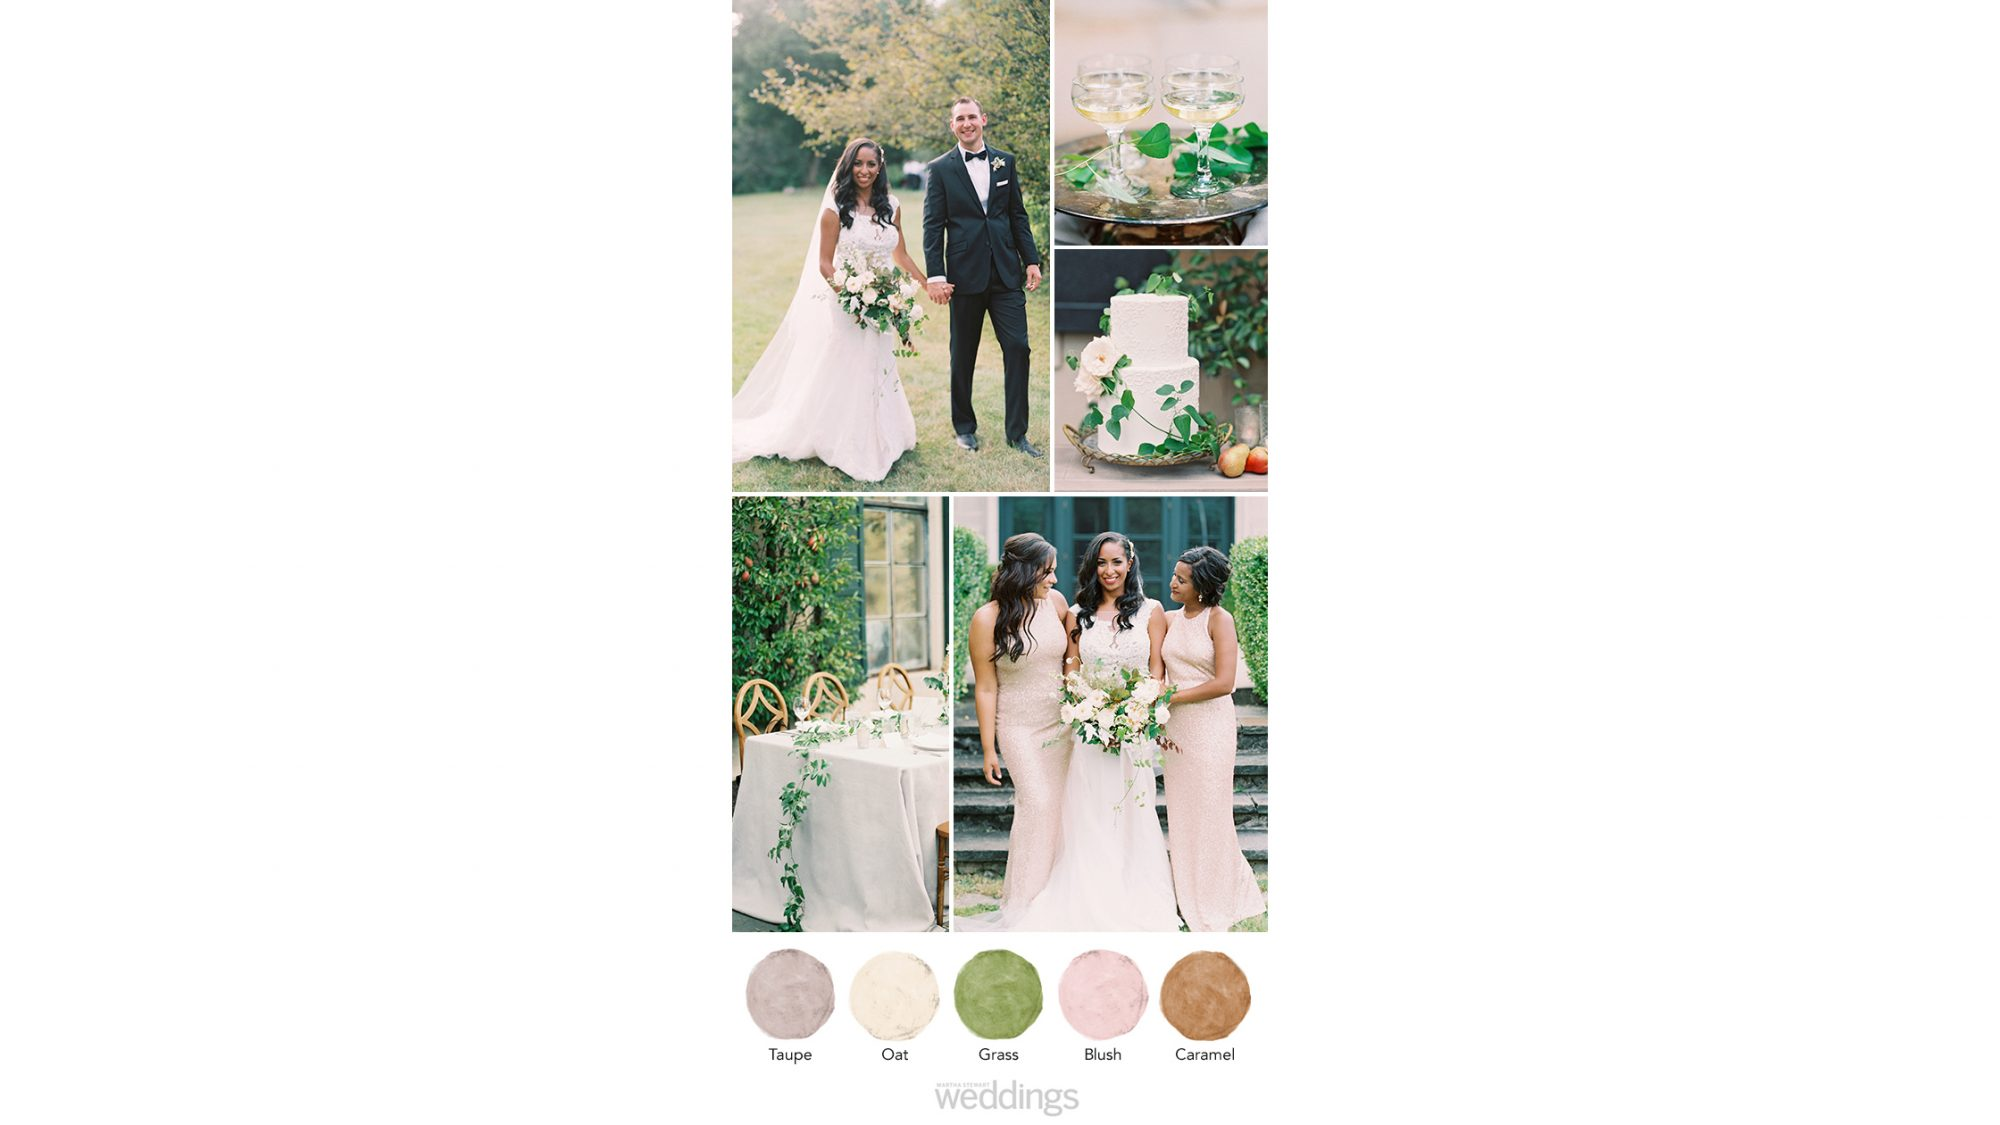 stone ivy wedding color palette ideas